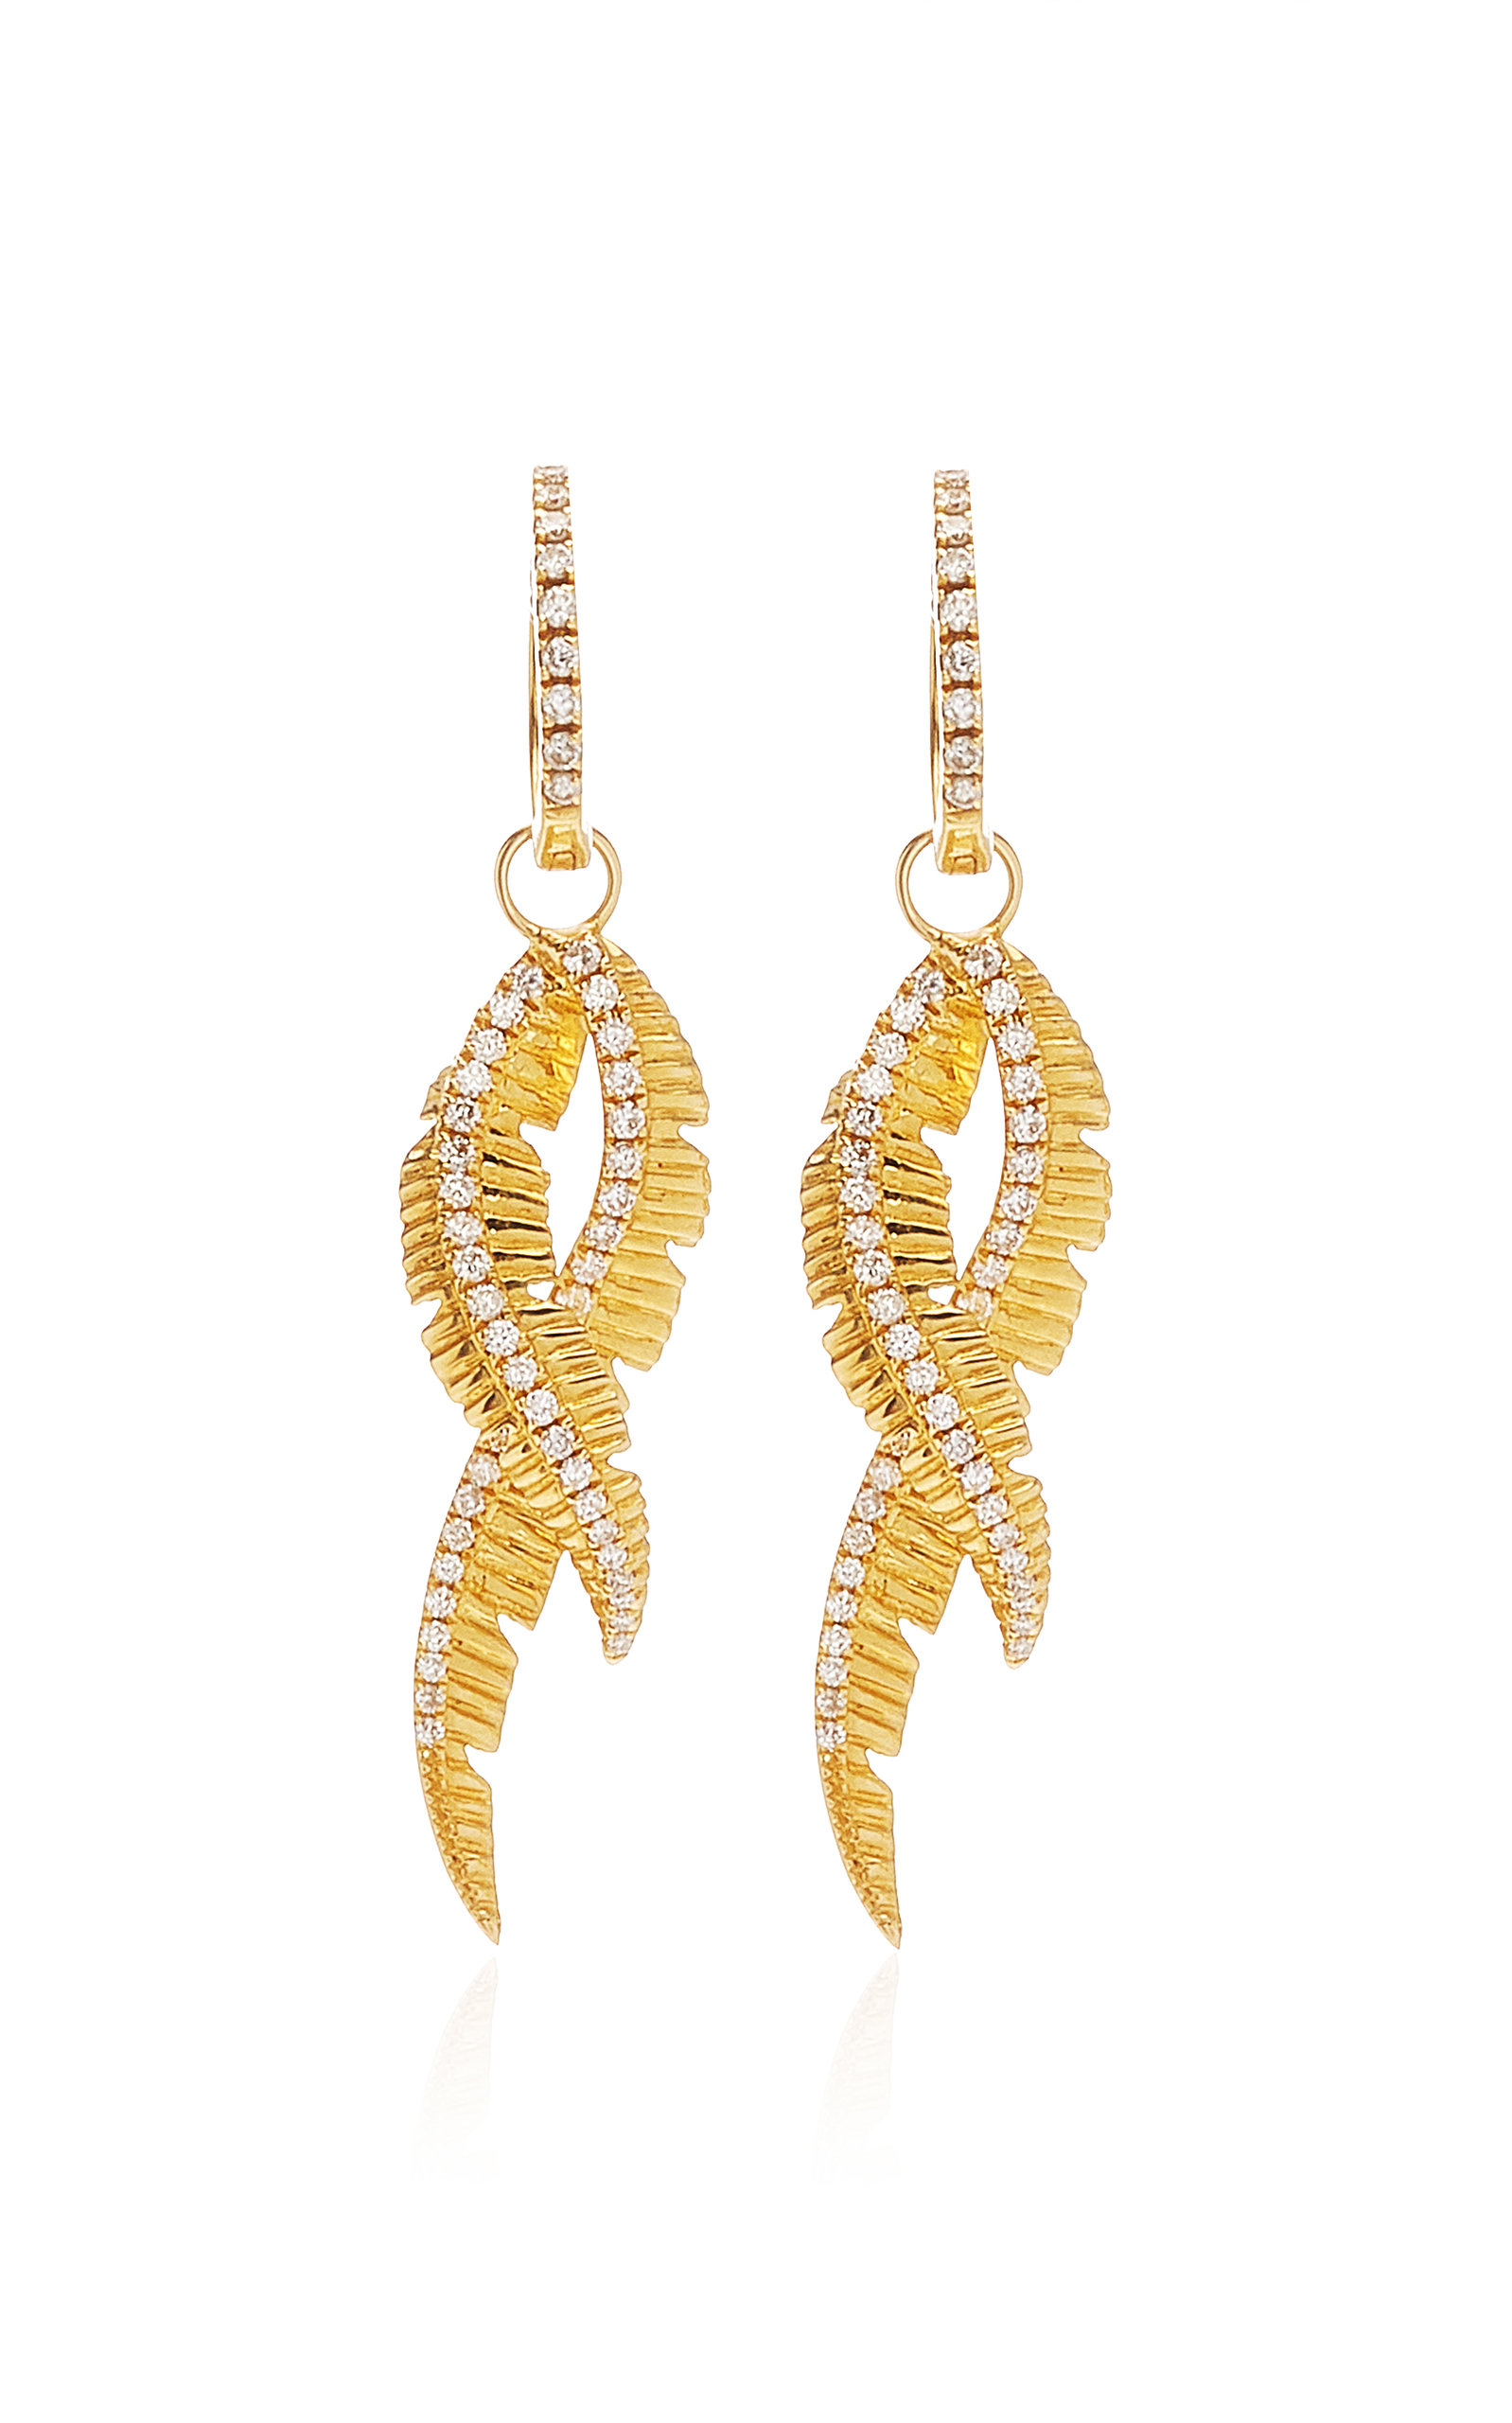 Women's Adornment Yellow-Gold and White Diamond Earrings